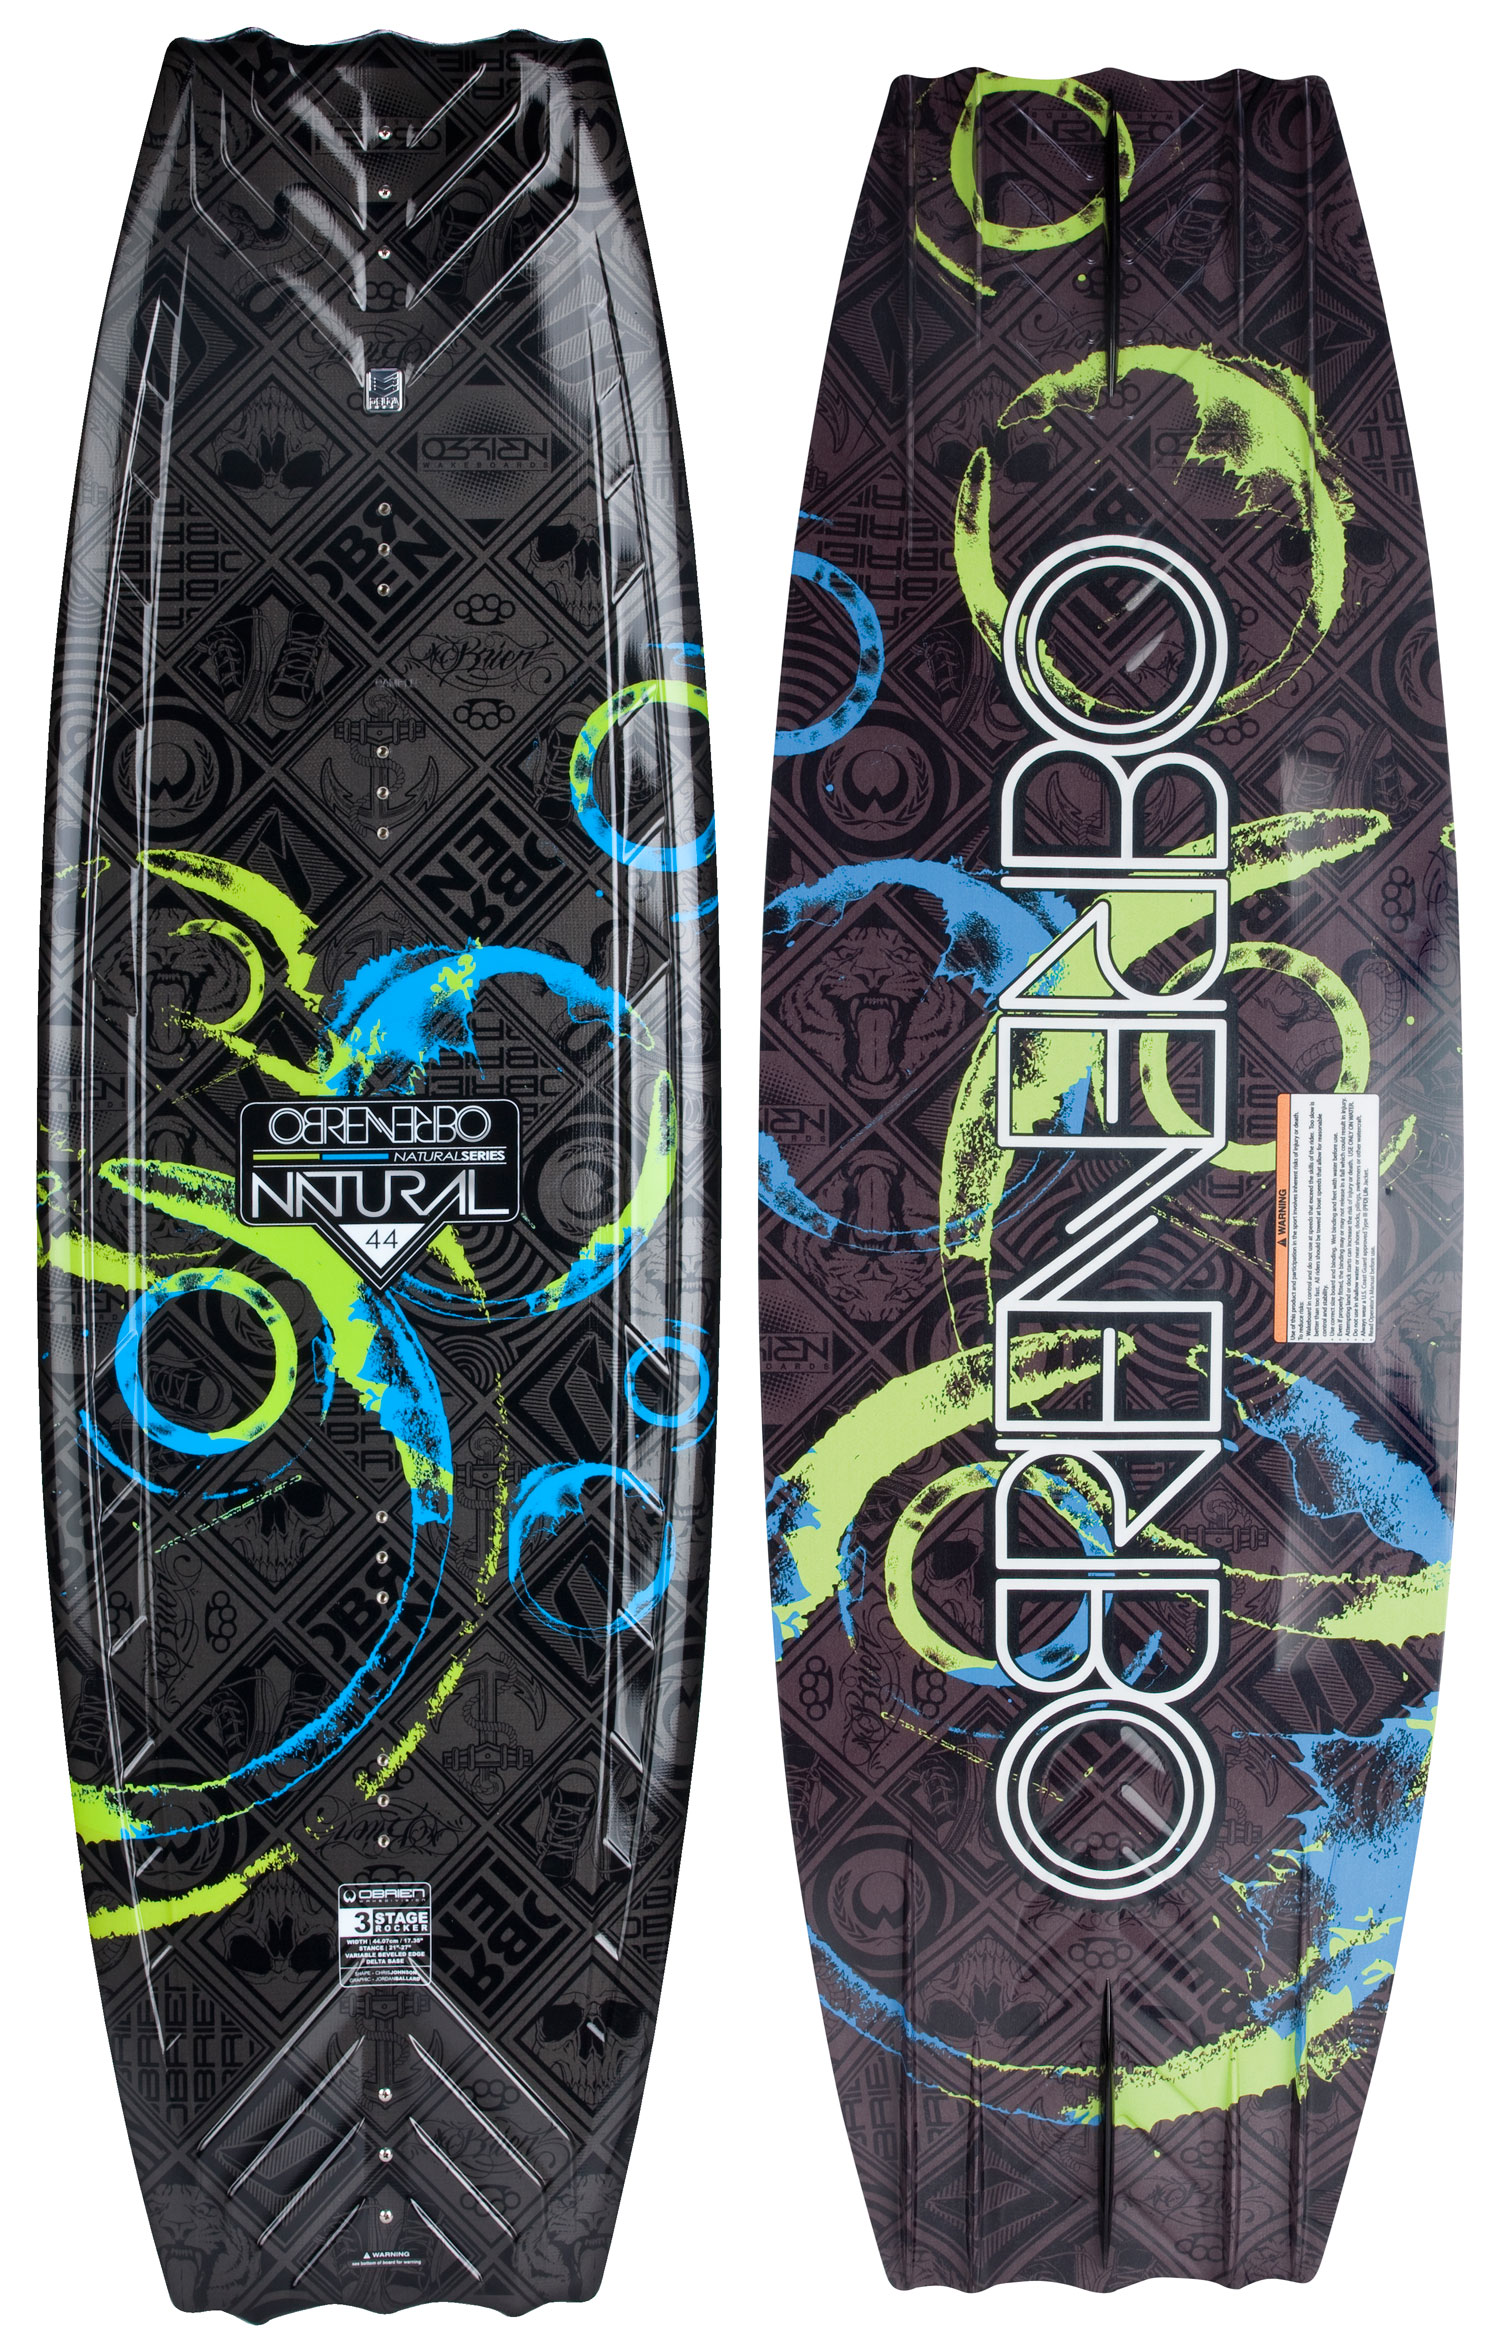 "Wake The O'Brien Natural Wakeboard, a favorite of riders of all levels! The Natural's full profile and wide tips are ideally suited to the rider who prefers a slightly tail-heavy approach to the wake. The blended three-stage rocker kicks the tail into the wake, generating more vertical pop. Have you witnessed O'Brien's proprietary Delta Base Technology in action? The Natural started the Delta revolution that creates a smoother, faster ride in any water condition. The variable beveled edge and quad molded fins provide secure edging, even when not using the optional center fin. The O'Brien Natural Wakeboard, one ride is all it takes!Key Features of the O'Brien Natural Wakeboard: Rocker Type: Three-stage Skill Level: Intermediate/Advanced Construction: PBT top w/ injection foam core Fin Configuration: Five on each end. One 0.7"" Pipe center fin and four outer molded-in fins. Wakeboard Binding CompatabilityCan not accomodate bindings with a 6 inch binding plate. Can accommodate bindings with a 8 inch binding plate in all position options found here. - $280.95"